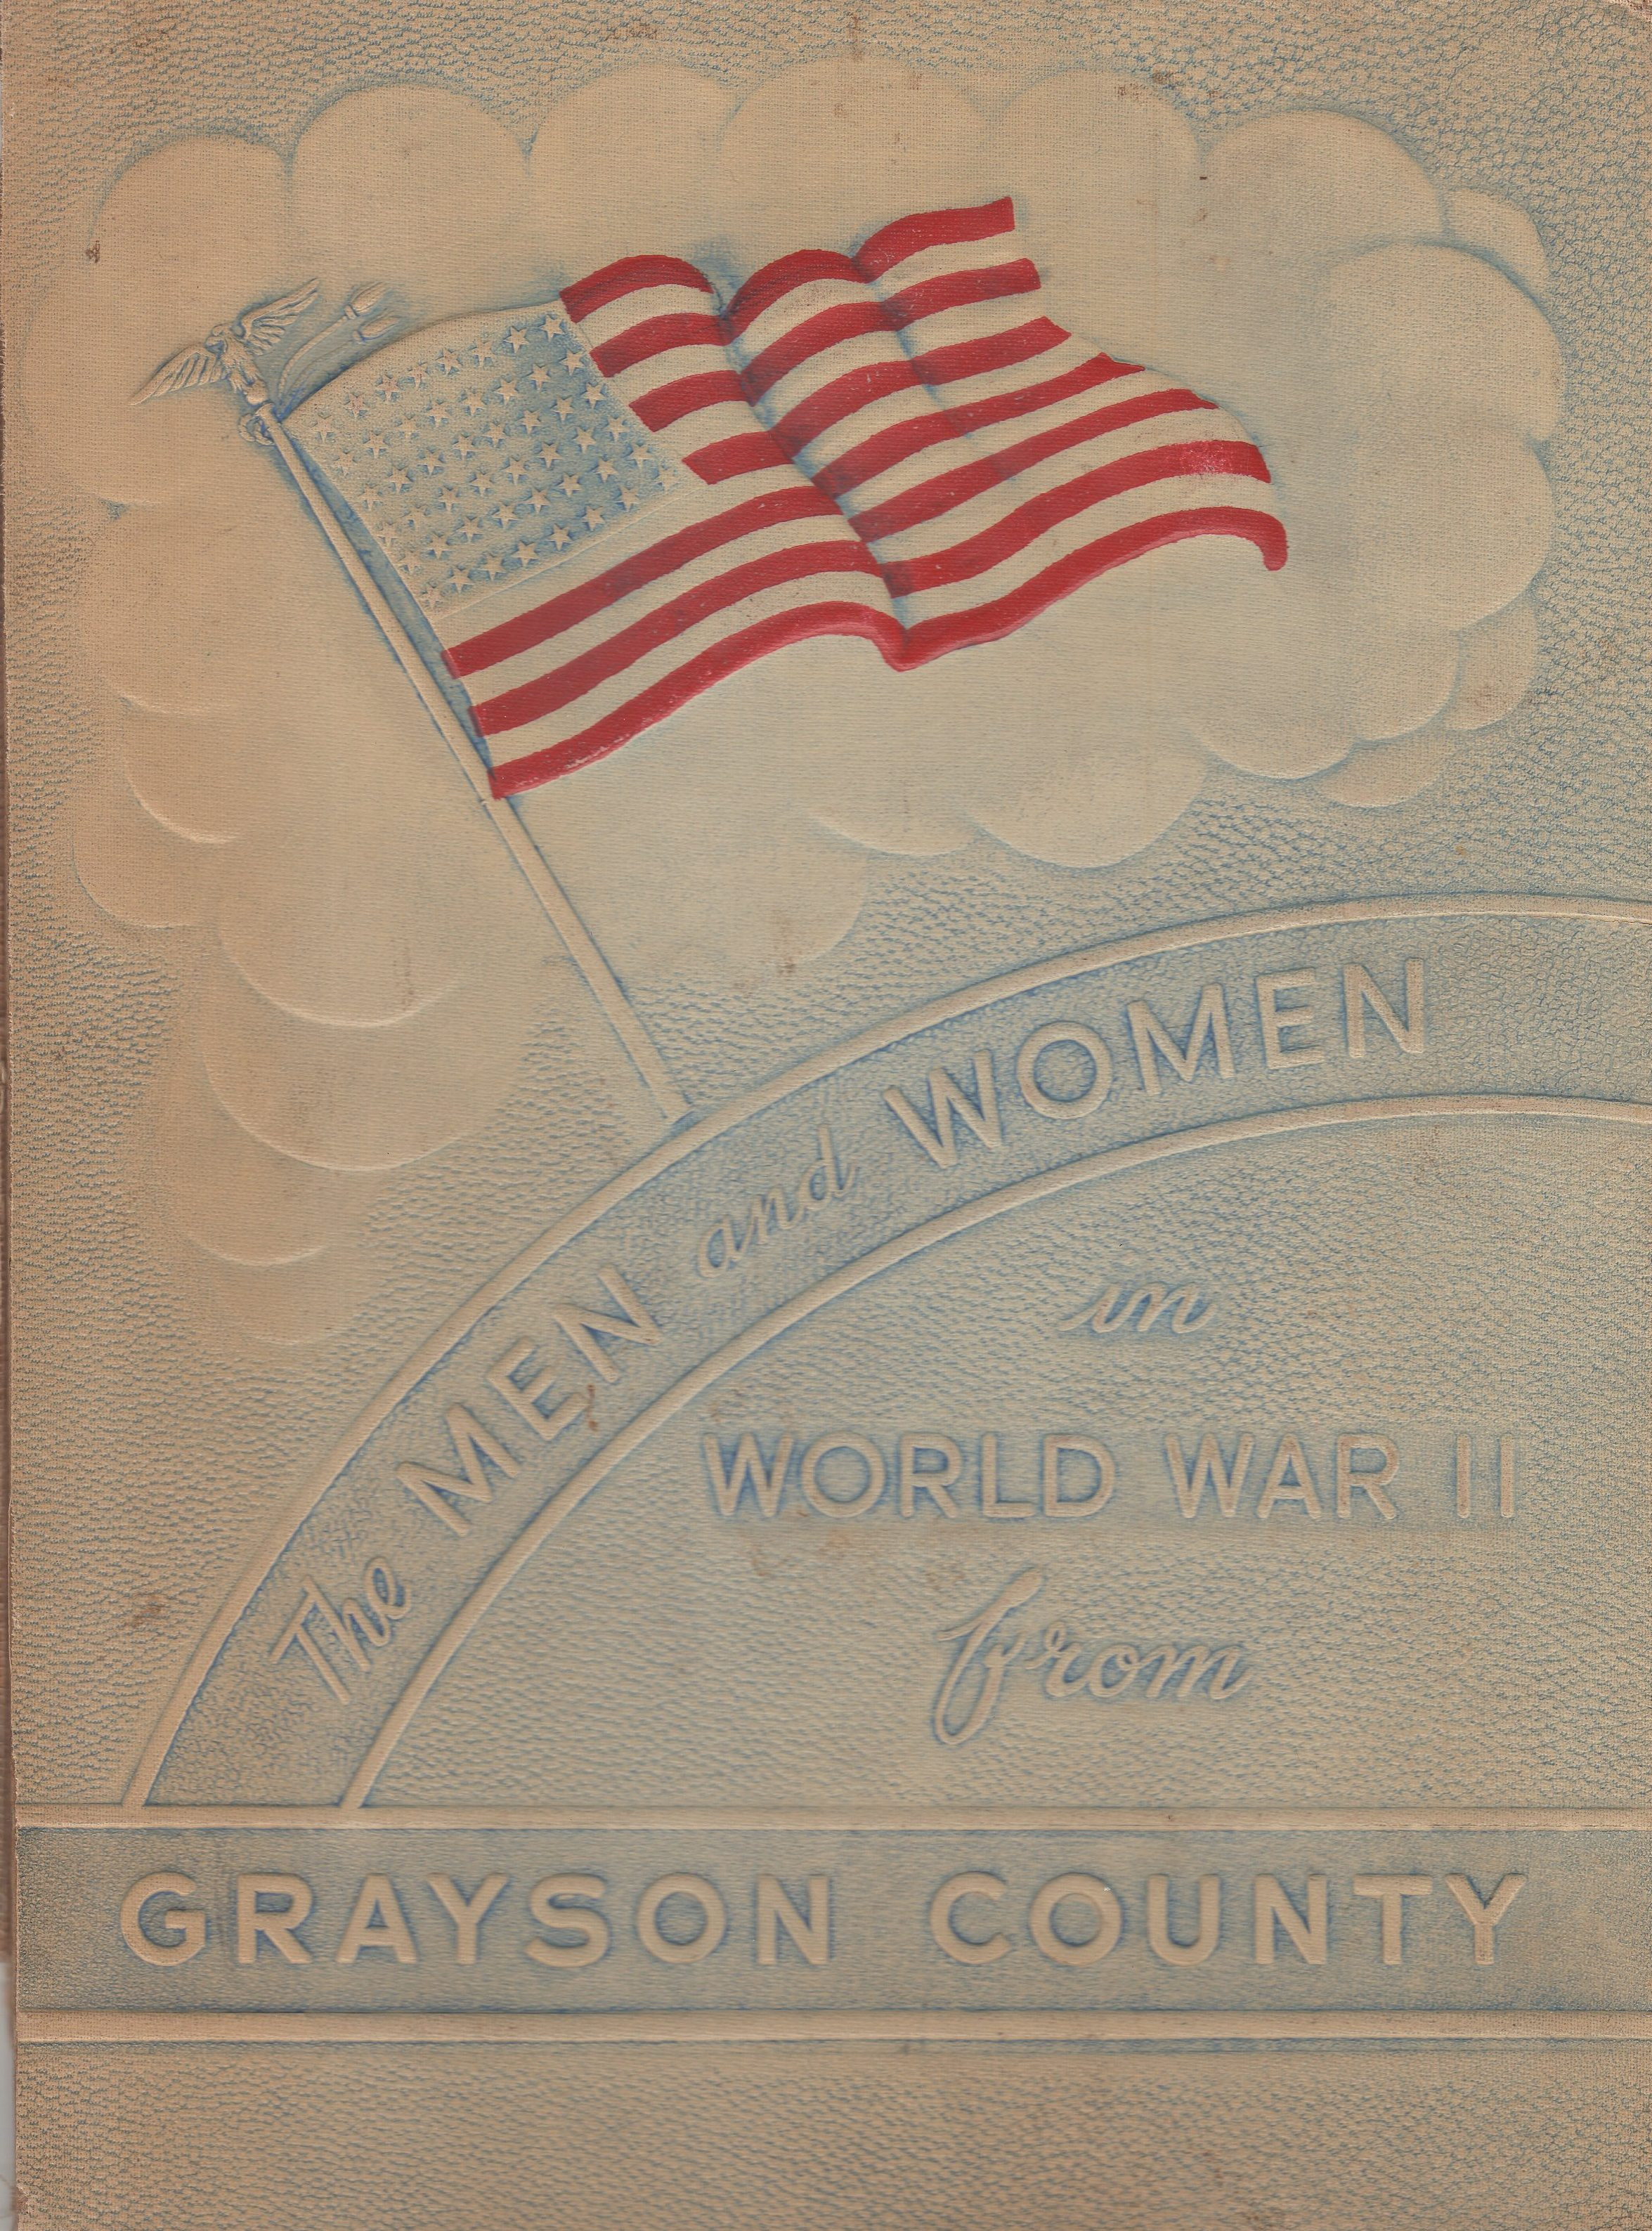 Men and women in the Armed Forces from Grayson County Texas WW2 WWII World War II 2